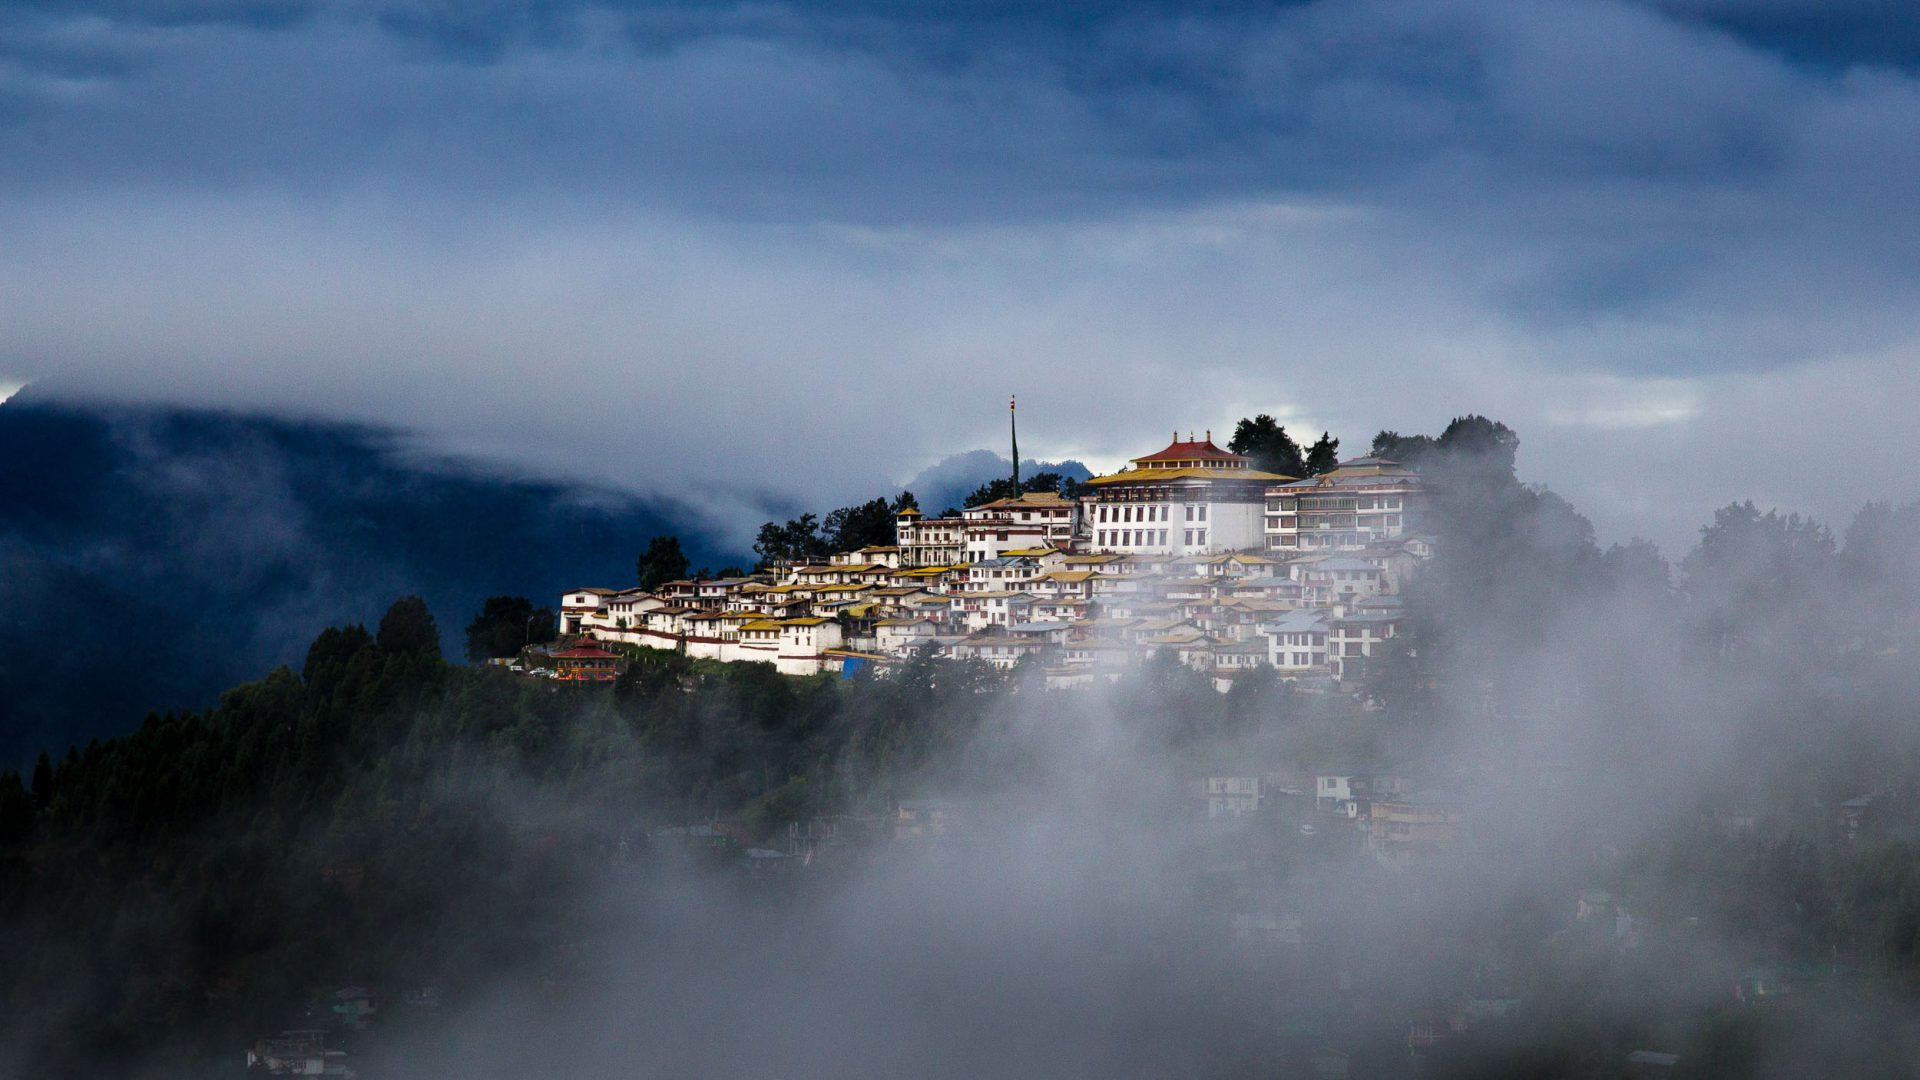 15 Best Places To Visit In Uttarakhand - Kausani